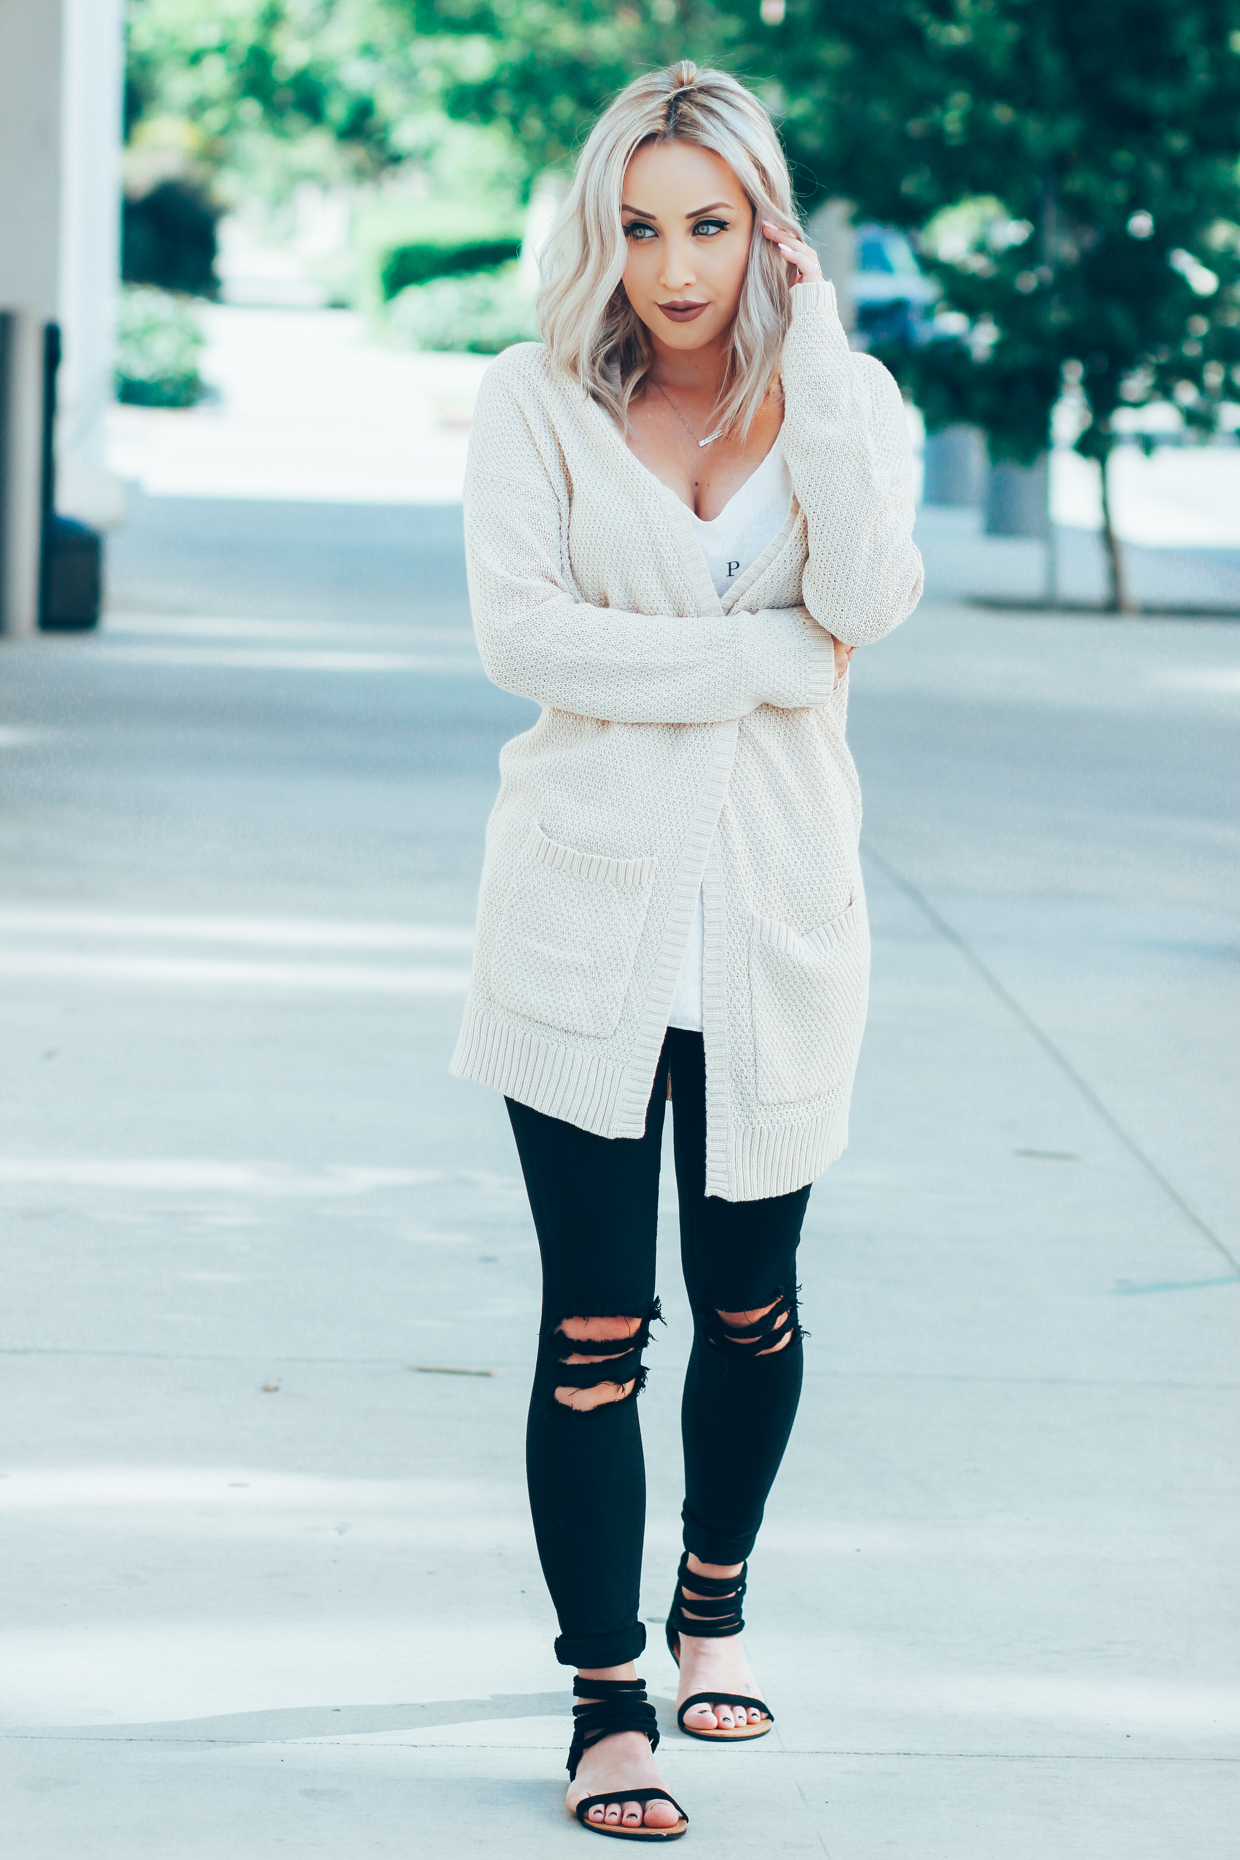 Blondie in the City | Casual #OOTD | Distressed Jeans | Ivory Cardigan @urbanoutfitters